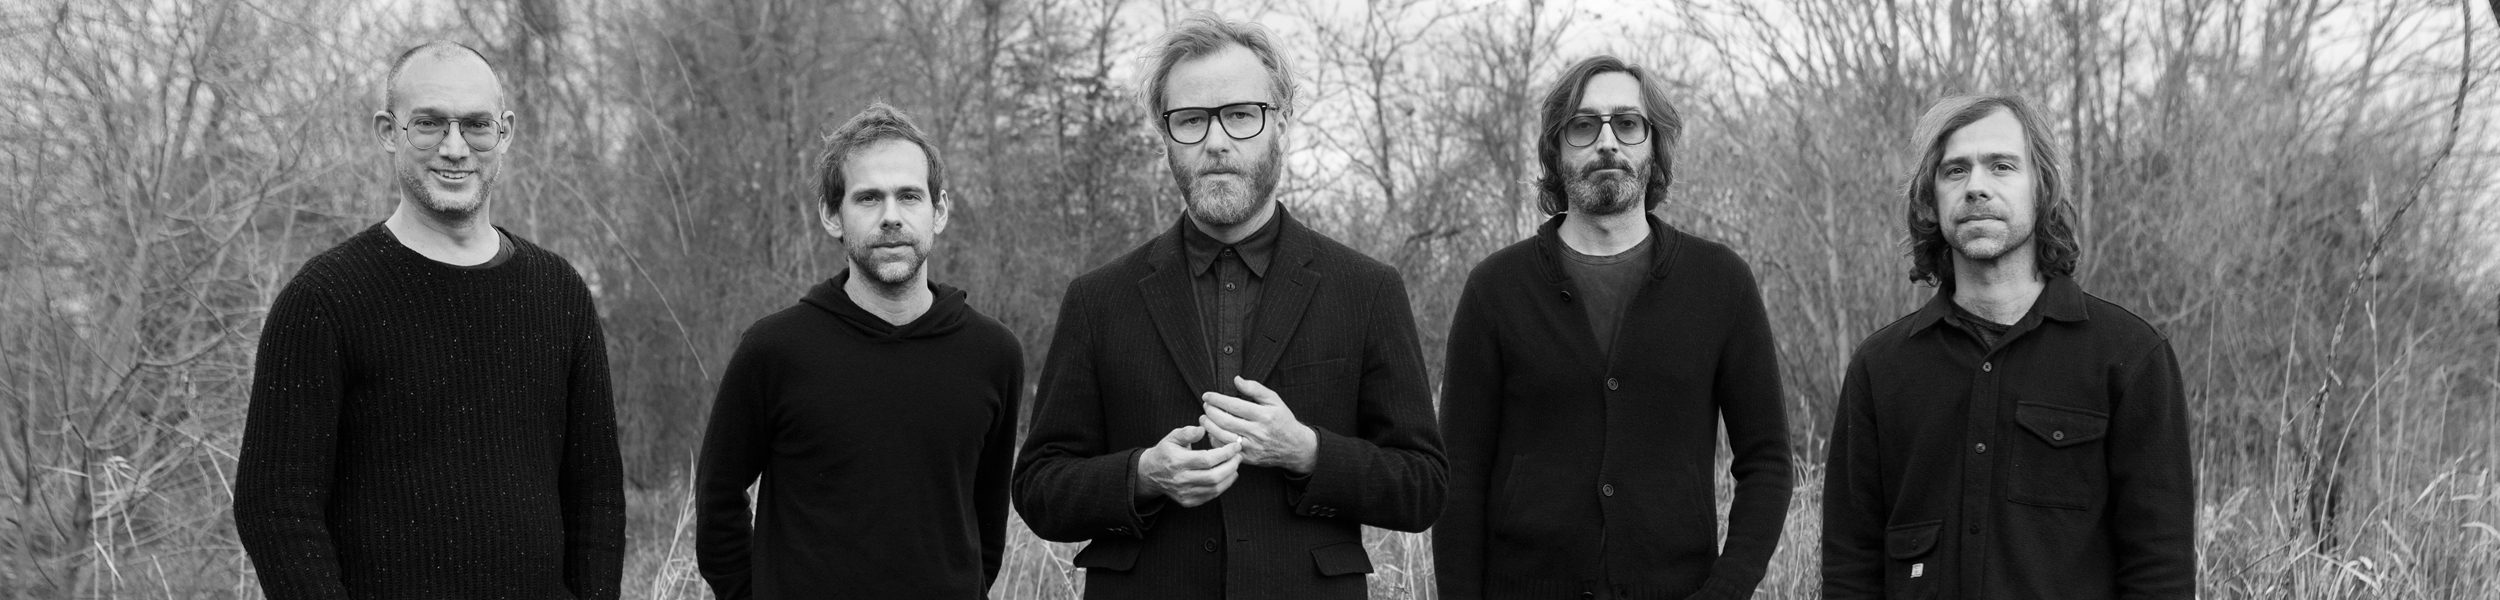 The National - The Year In Review: The National